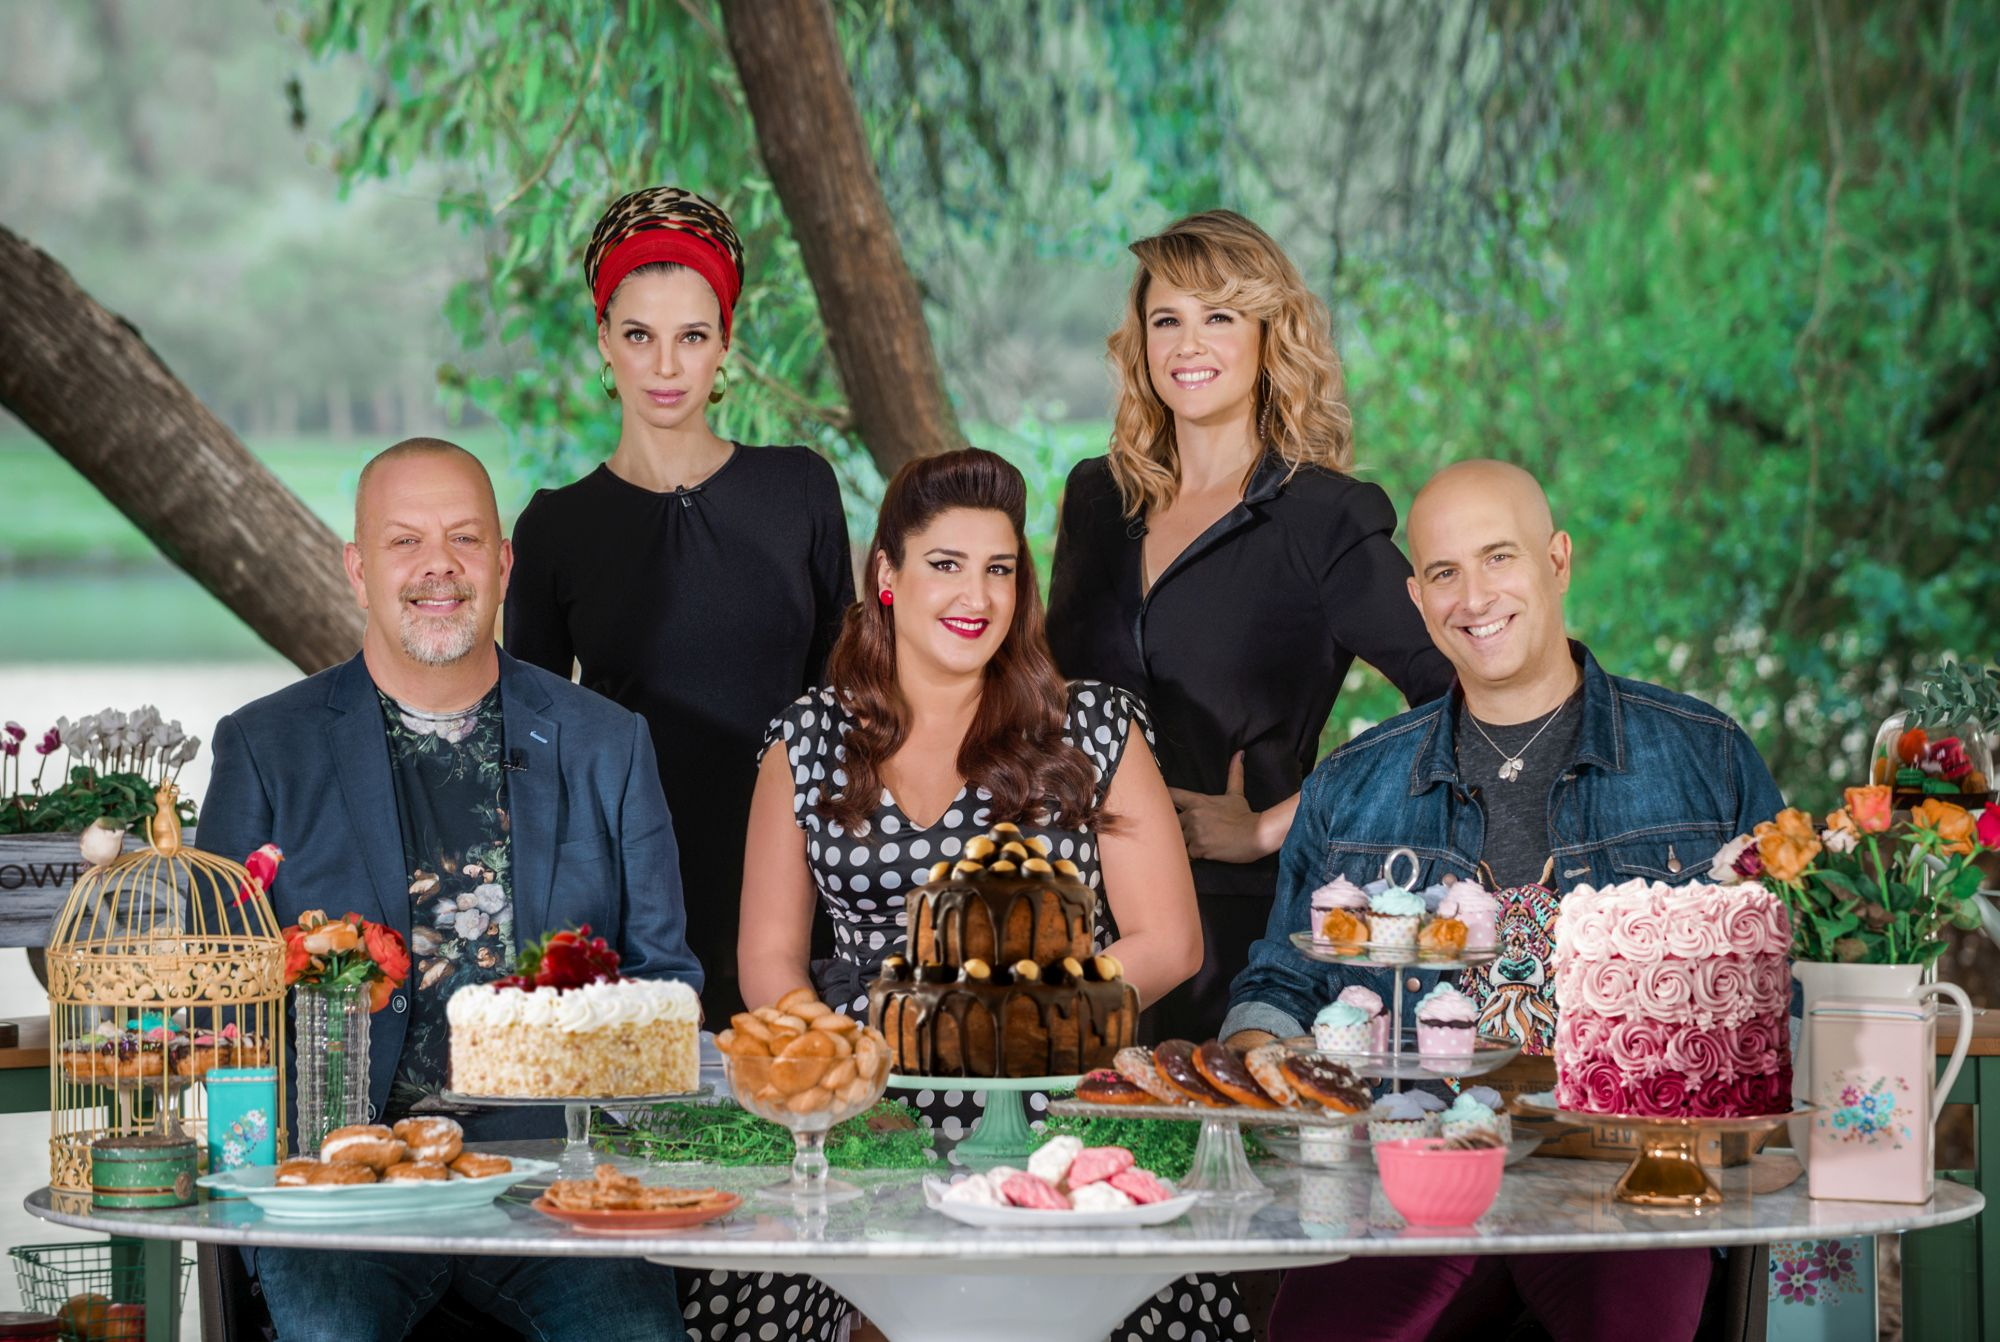 Bake-off Israel